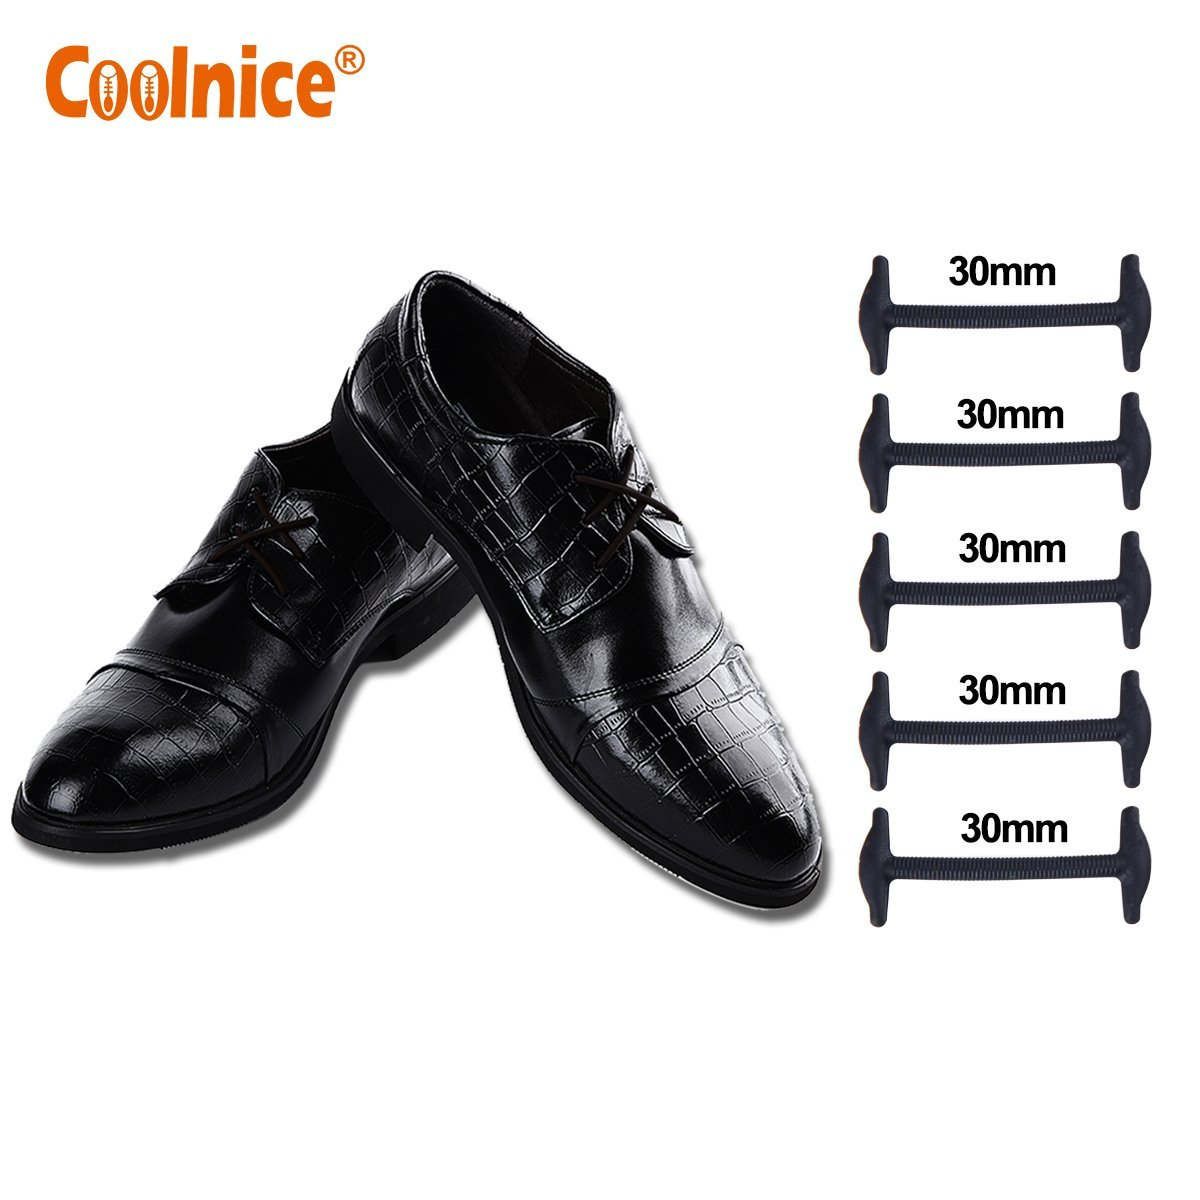 1e62f688a010 Get Quotations · Elastic No Tie Shoe Laces for Business Men and Women